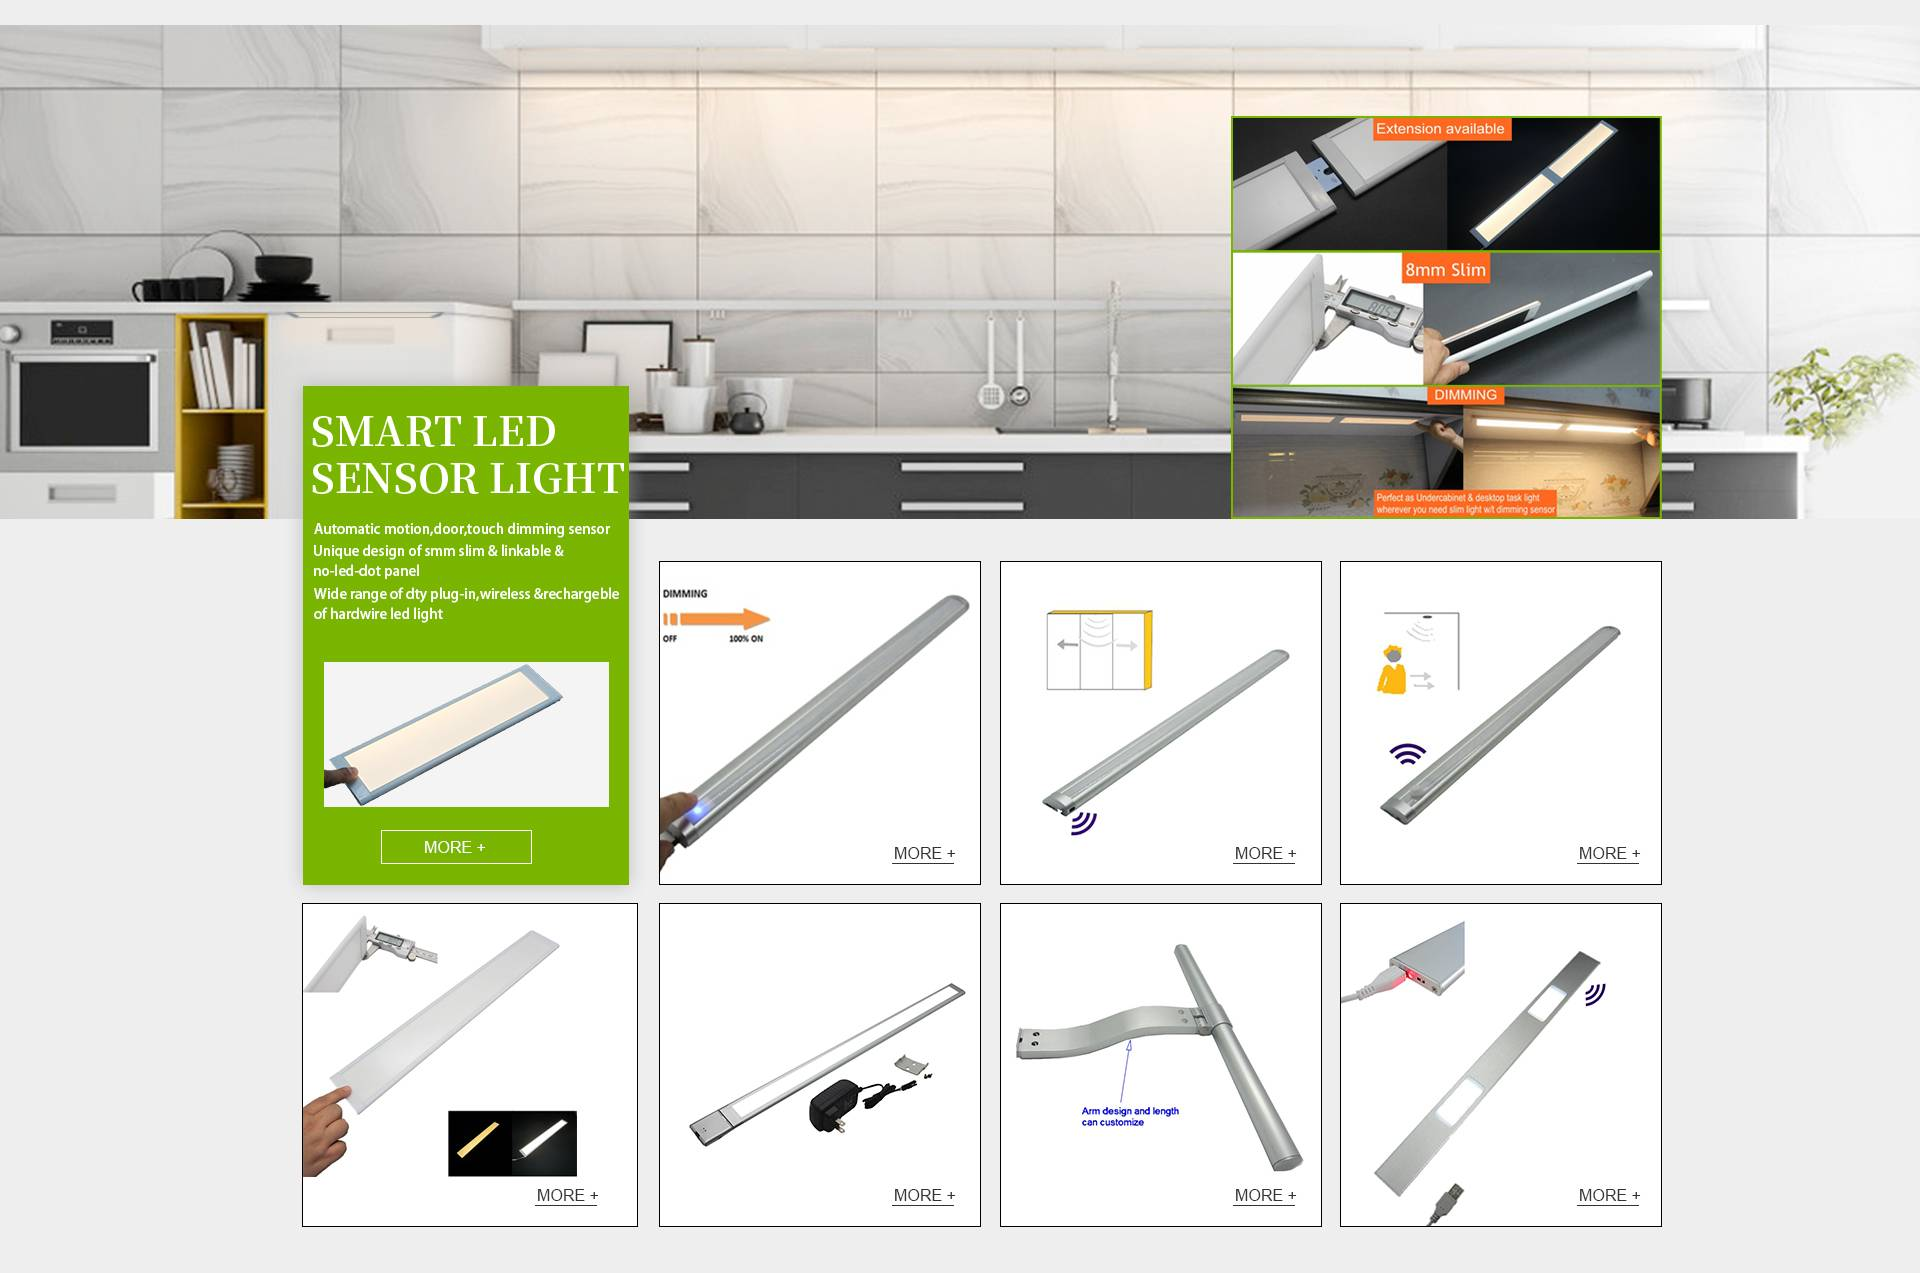 Why We Suggest LEDs for Under Cabinet Lighting?